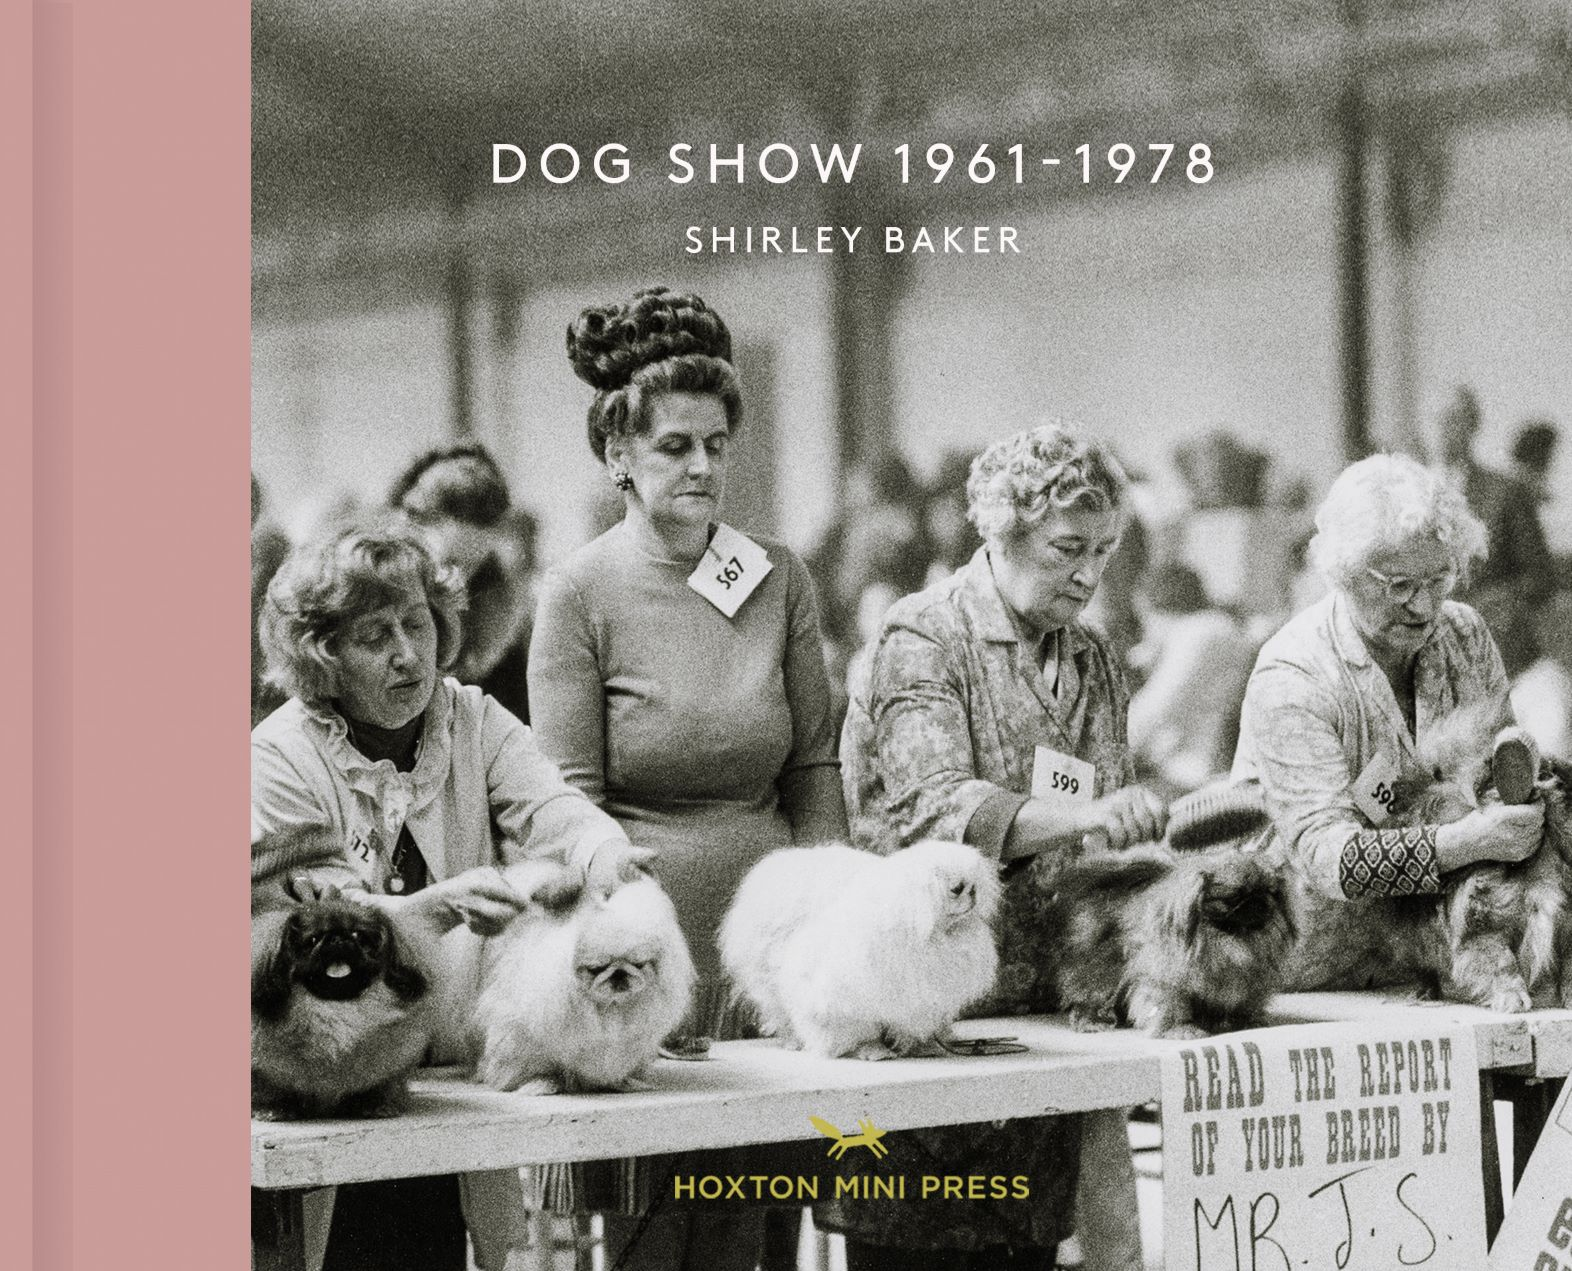 Dog Show: 1961-1978 by Shirley Baker. Cover photograph: Shirley Baker